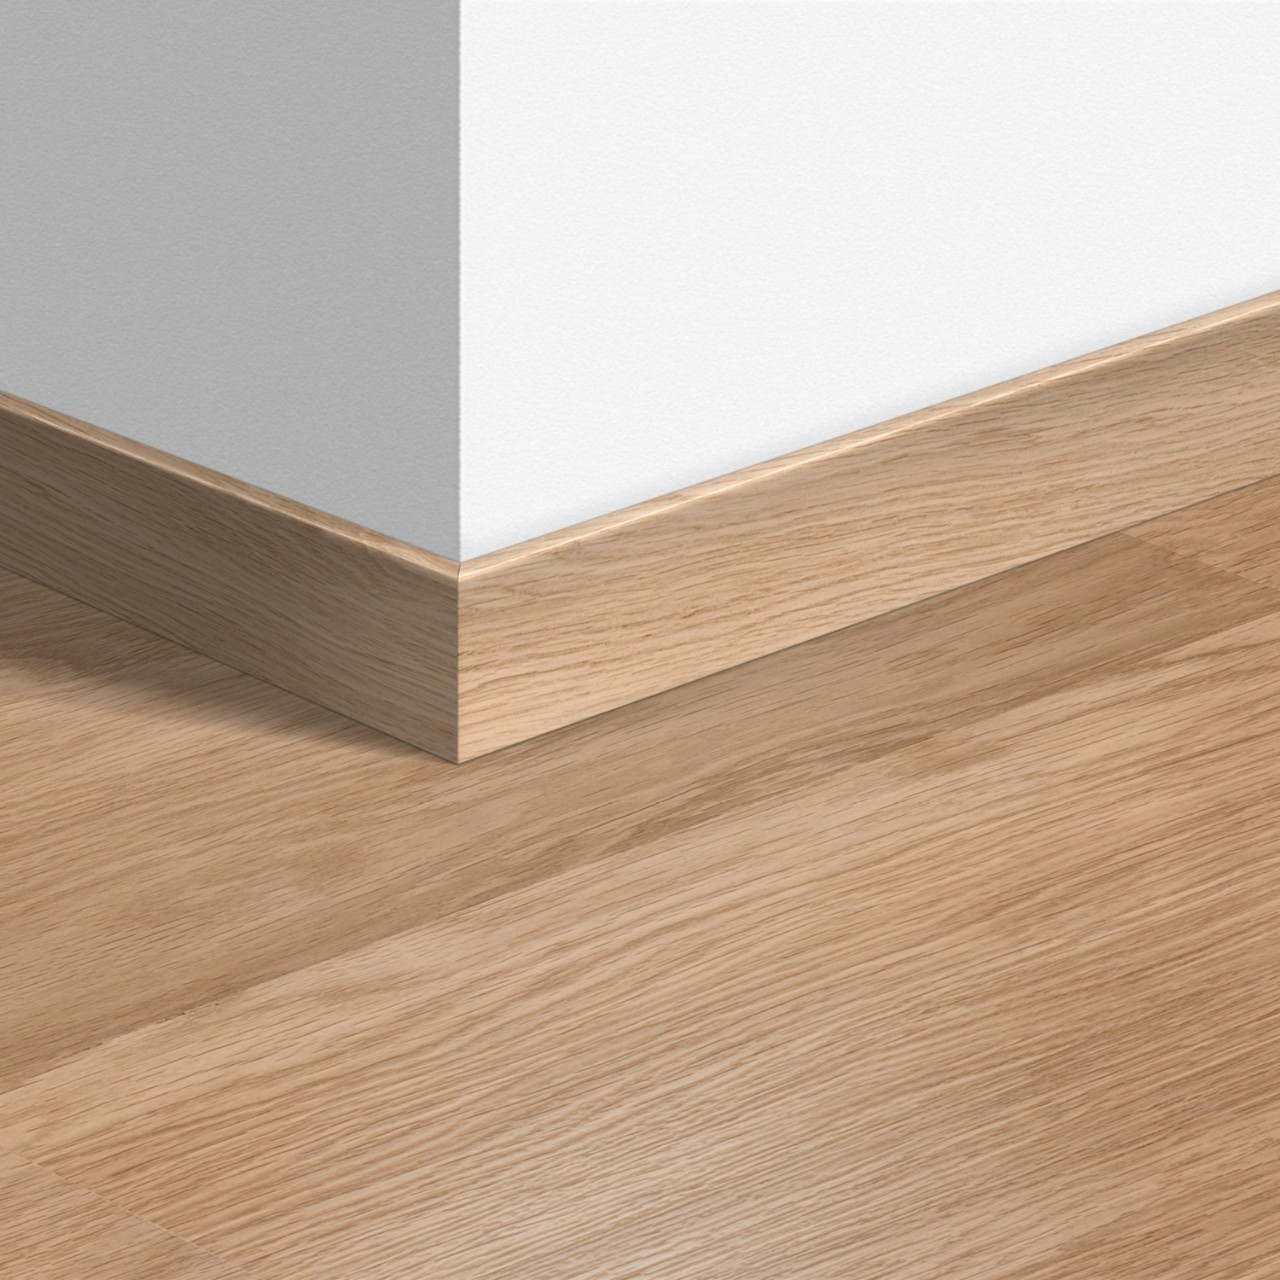 QSSK Laminate Accessories White varnished oak QSSK00915